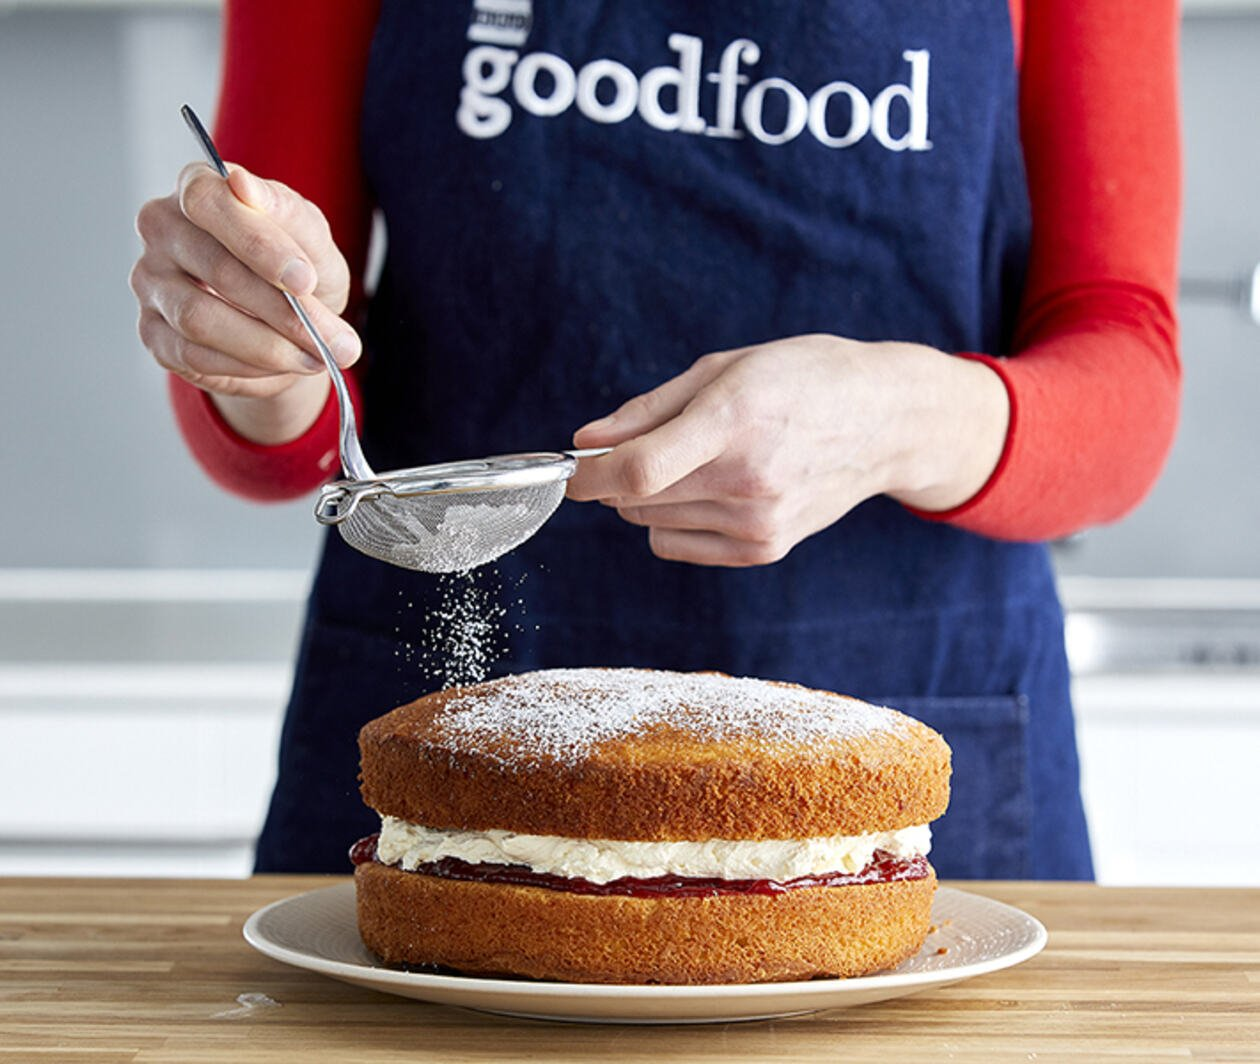 Learn How to Bake with BBC Good Food - Online Baking Course - FutureLearn